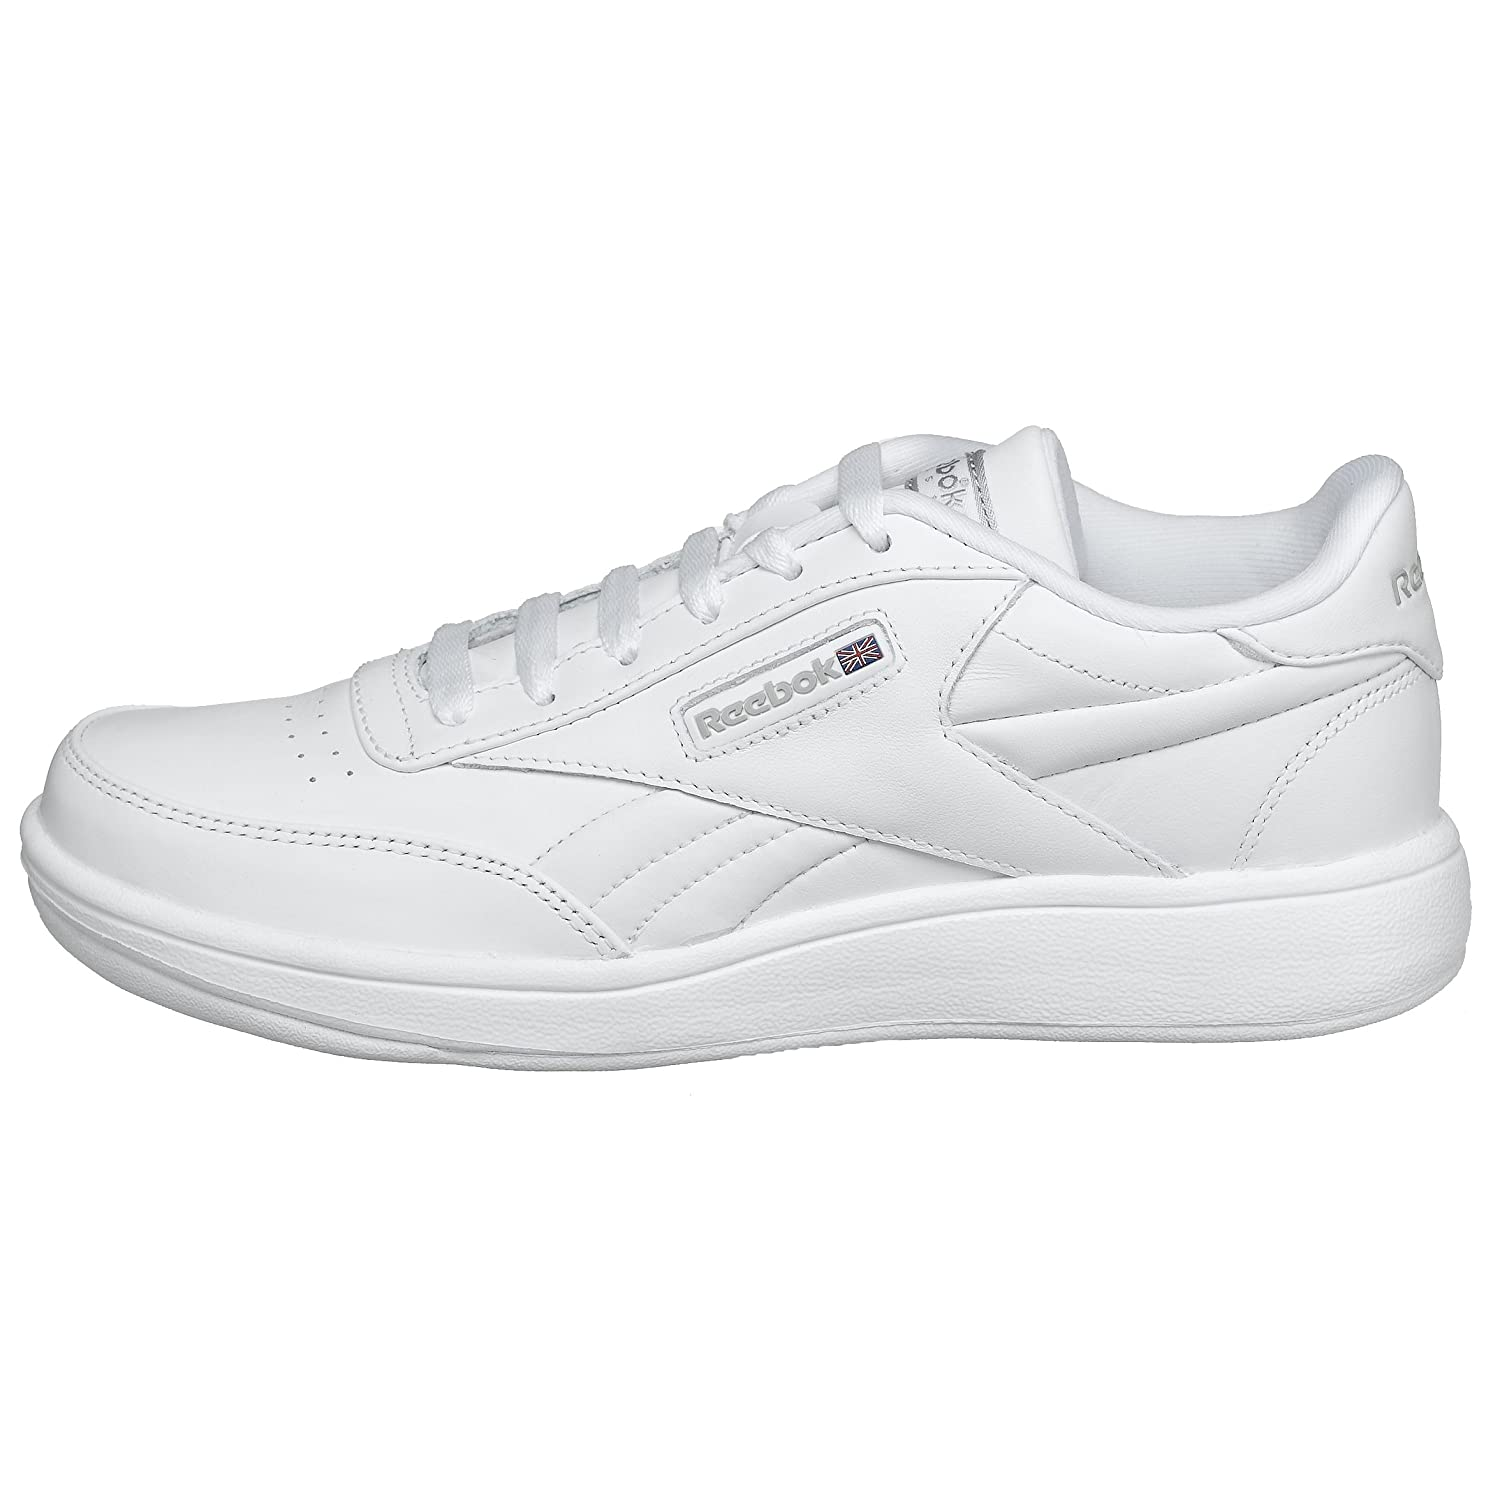 reebok womens classic ace tennis shoe